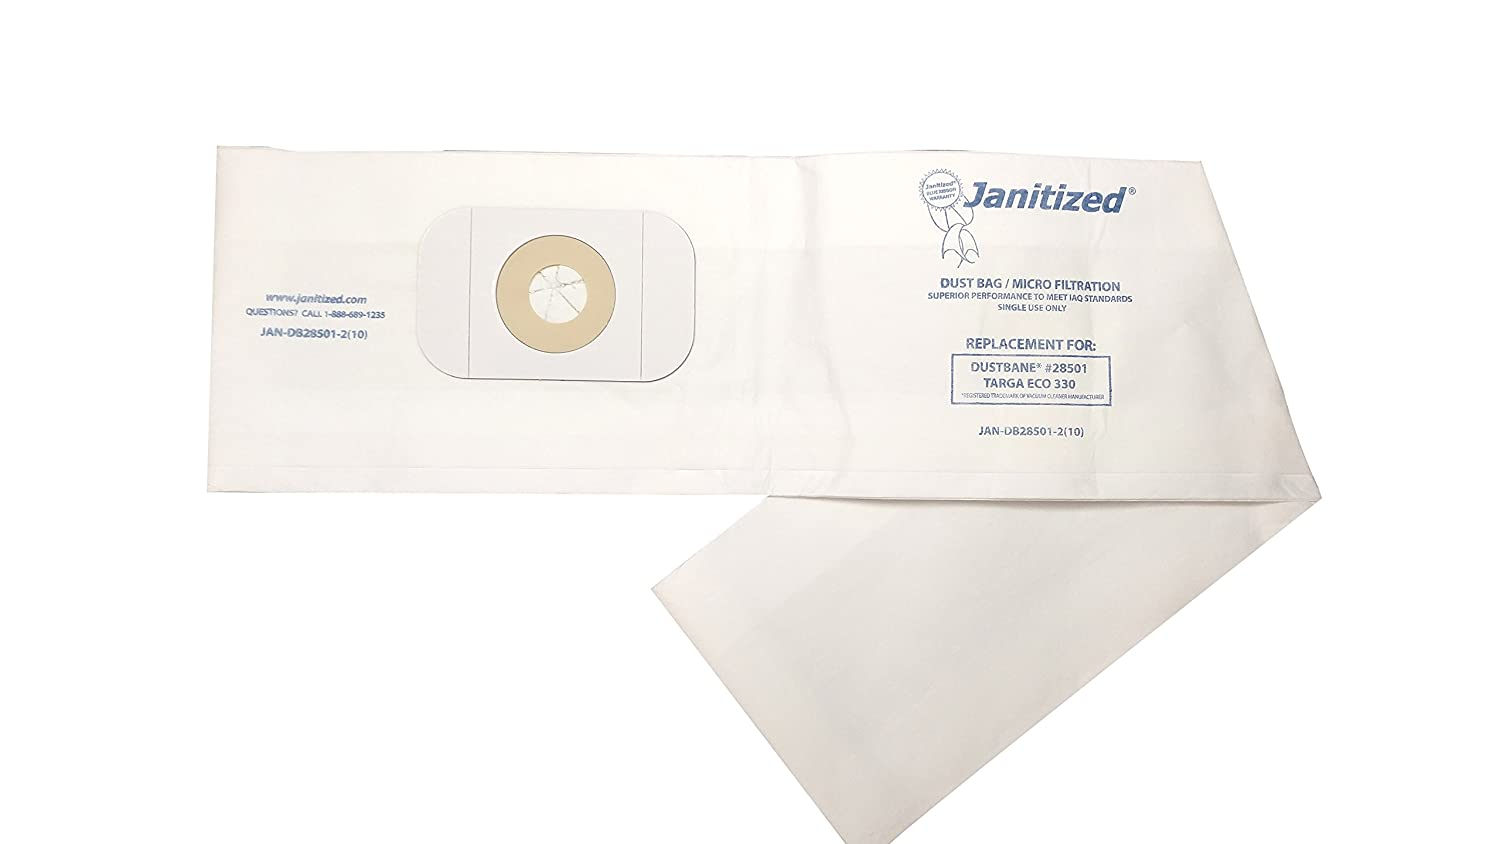 -EA Premium Replacement Commercial Vacuum Bag for Dustbin 28501//Targa Eco 330 7 Length Pack of 10 1 Height 32 Width 7 Length 10 32 Width Pack of 10 APC Filtration OEM# 28501 Janitized JAN-DB28501-2 1 Height